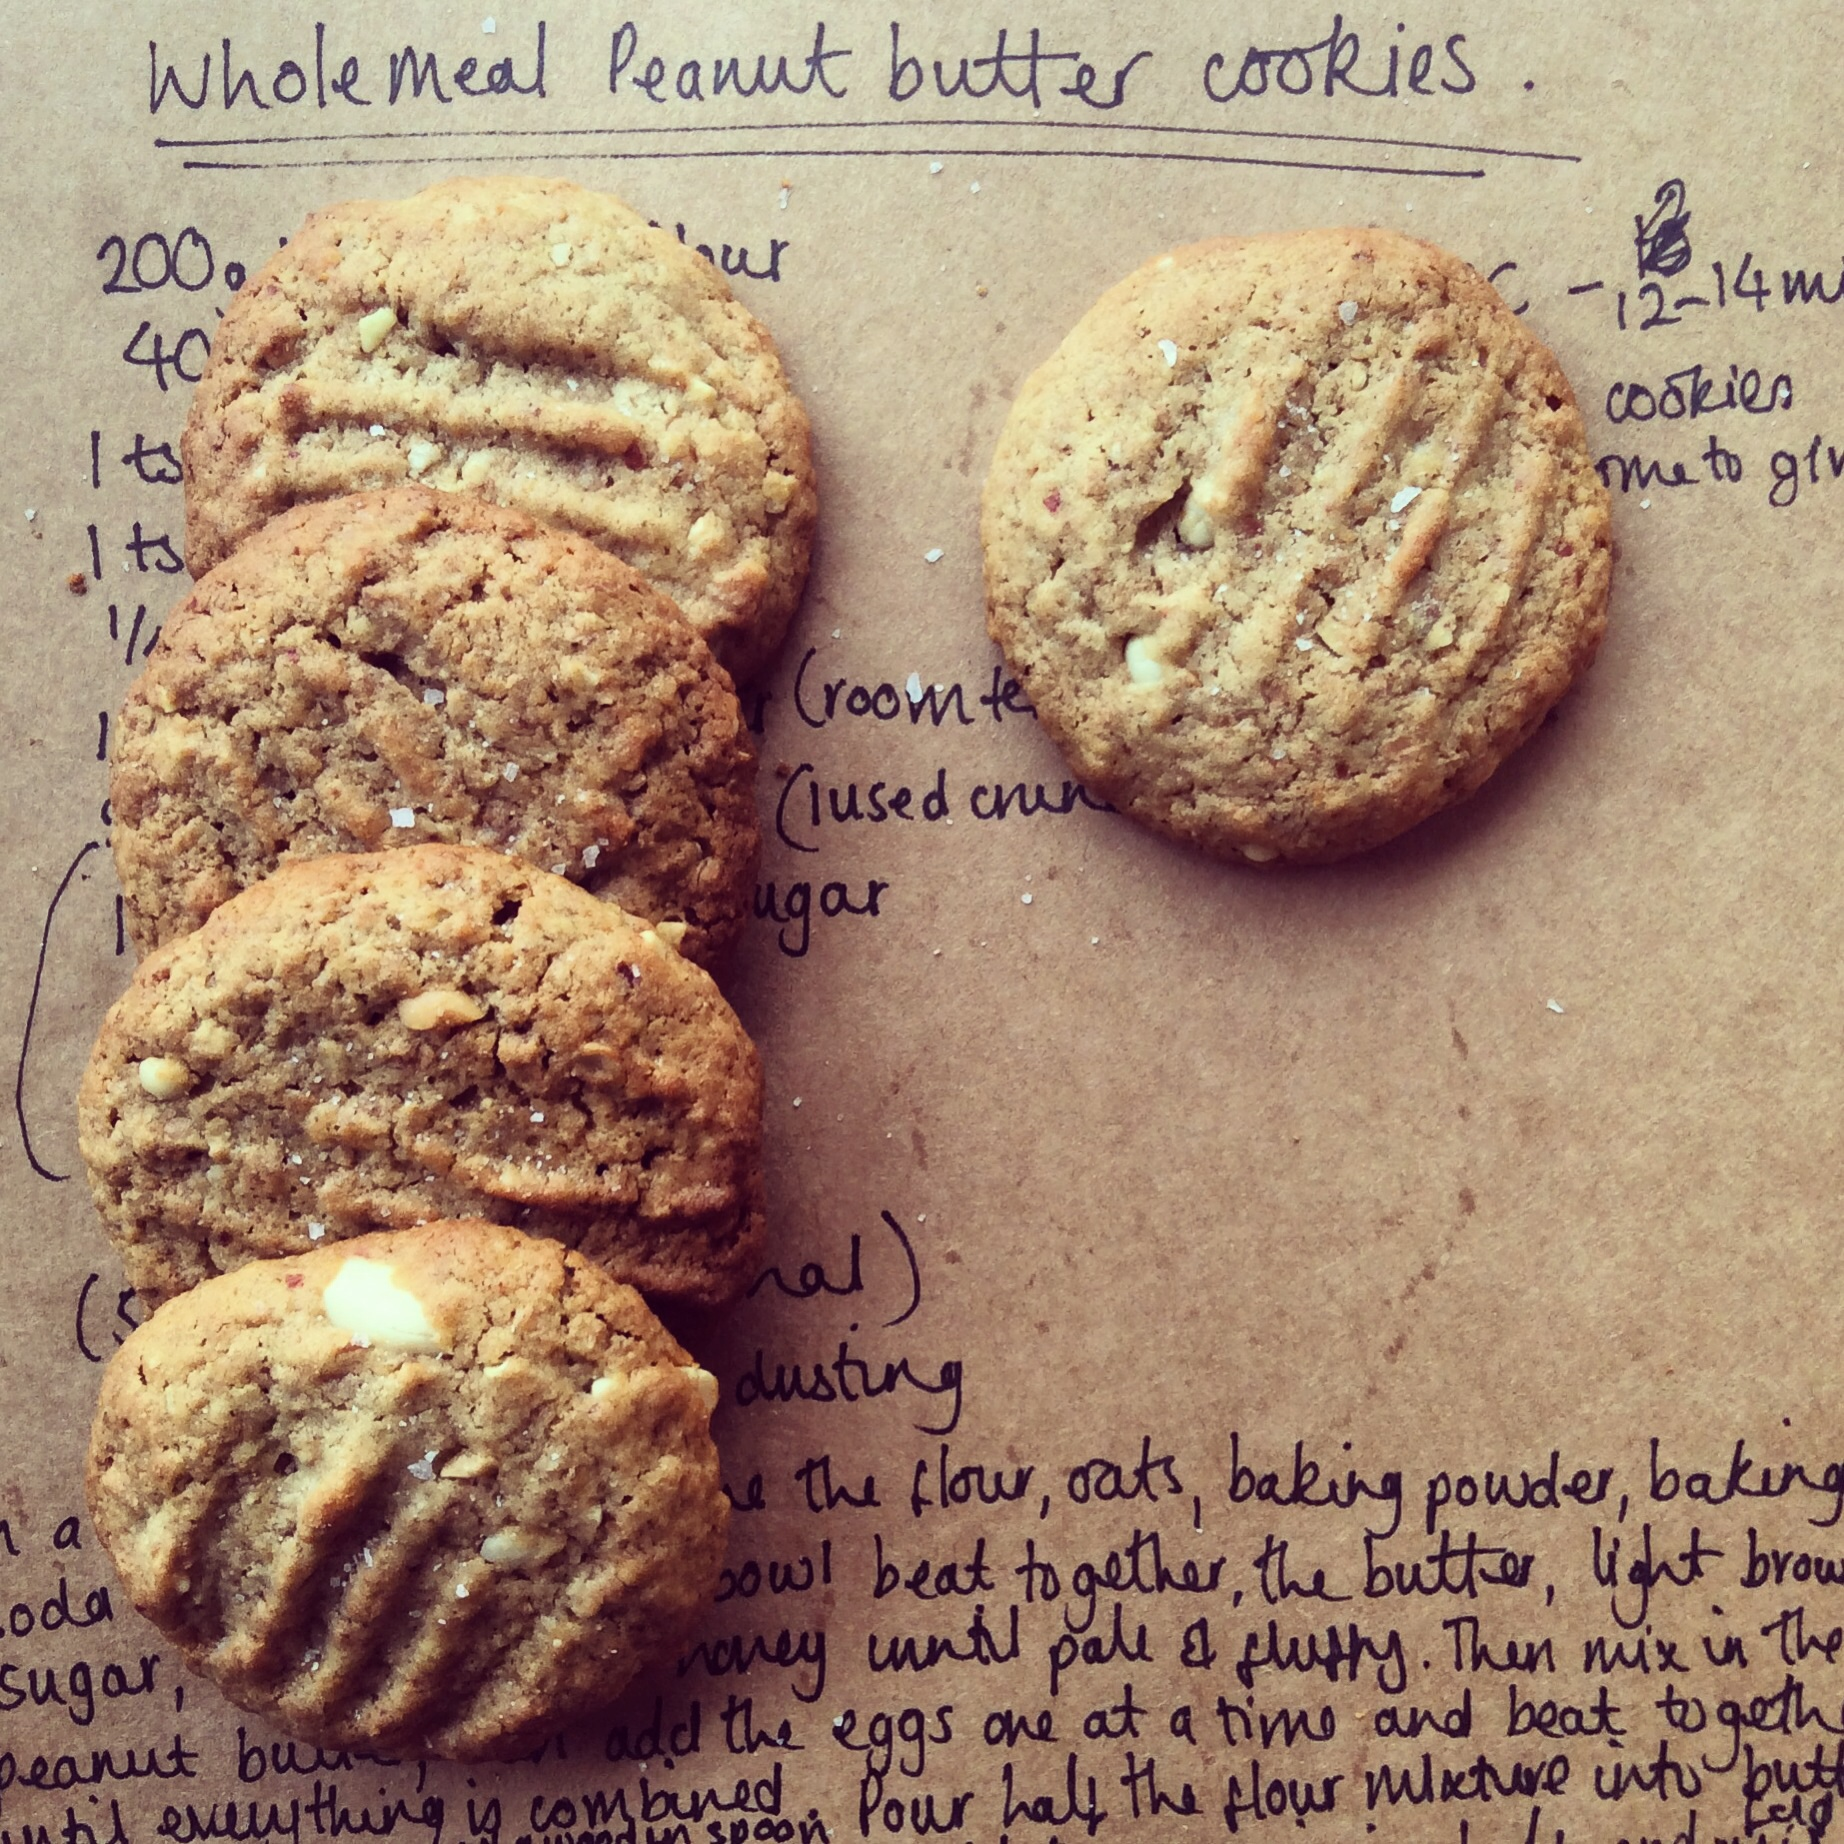 Wholemeal peanut butter cookies